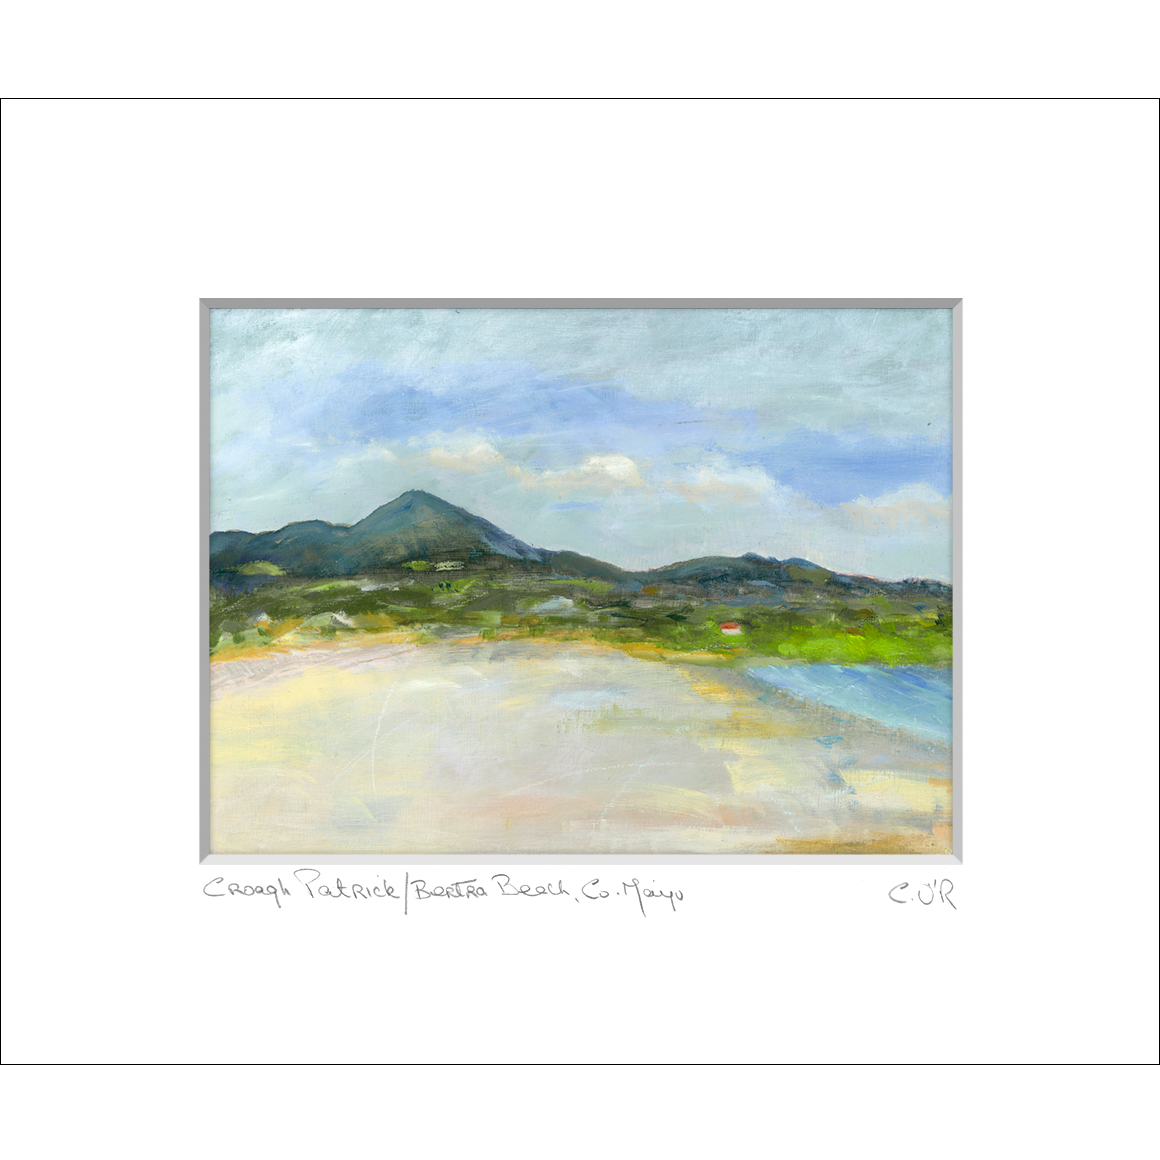 Corry O'Reilly 'Croagh Patrick/Bertra Beach, Co. Mayo'